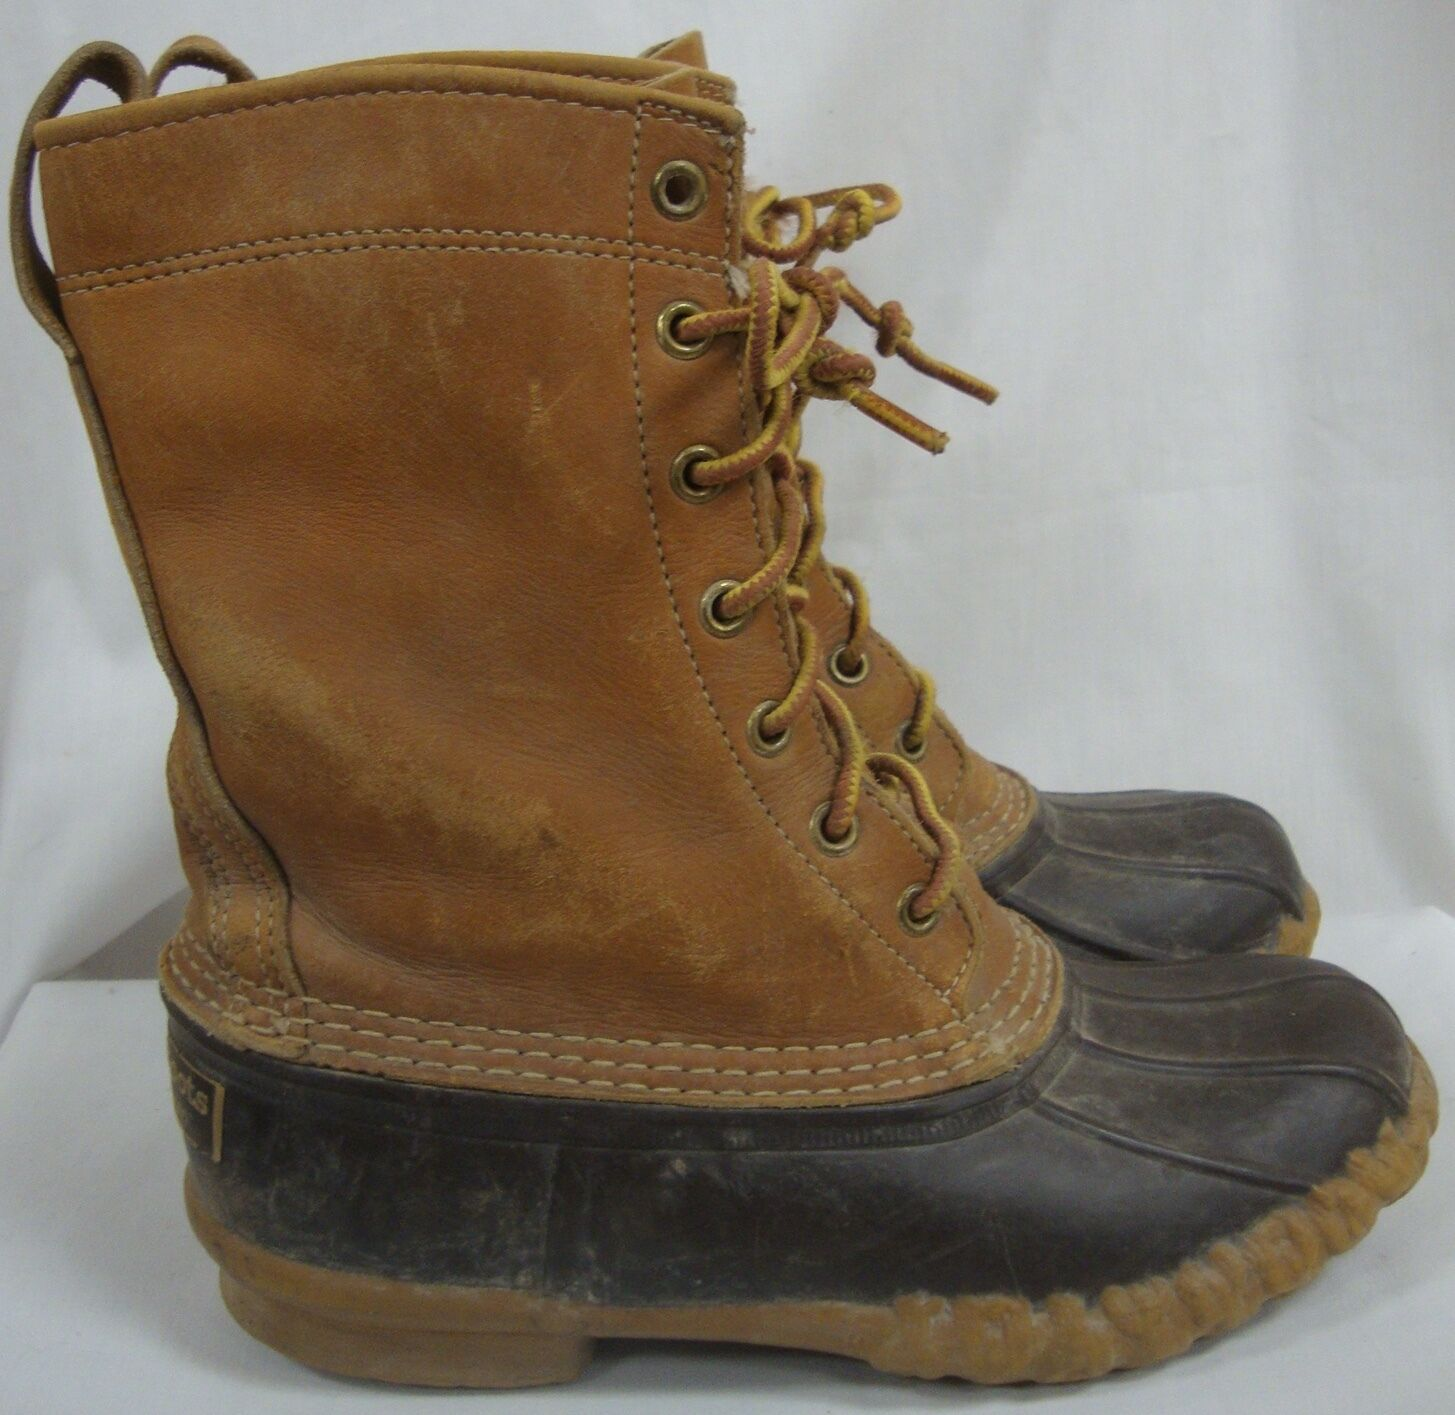 VINTAGE L L BEAN MAINE HUNTING ICONIC BEAN BOOTS Damenschuhe SIZE 6 MADE IN USA